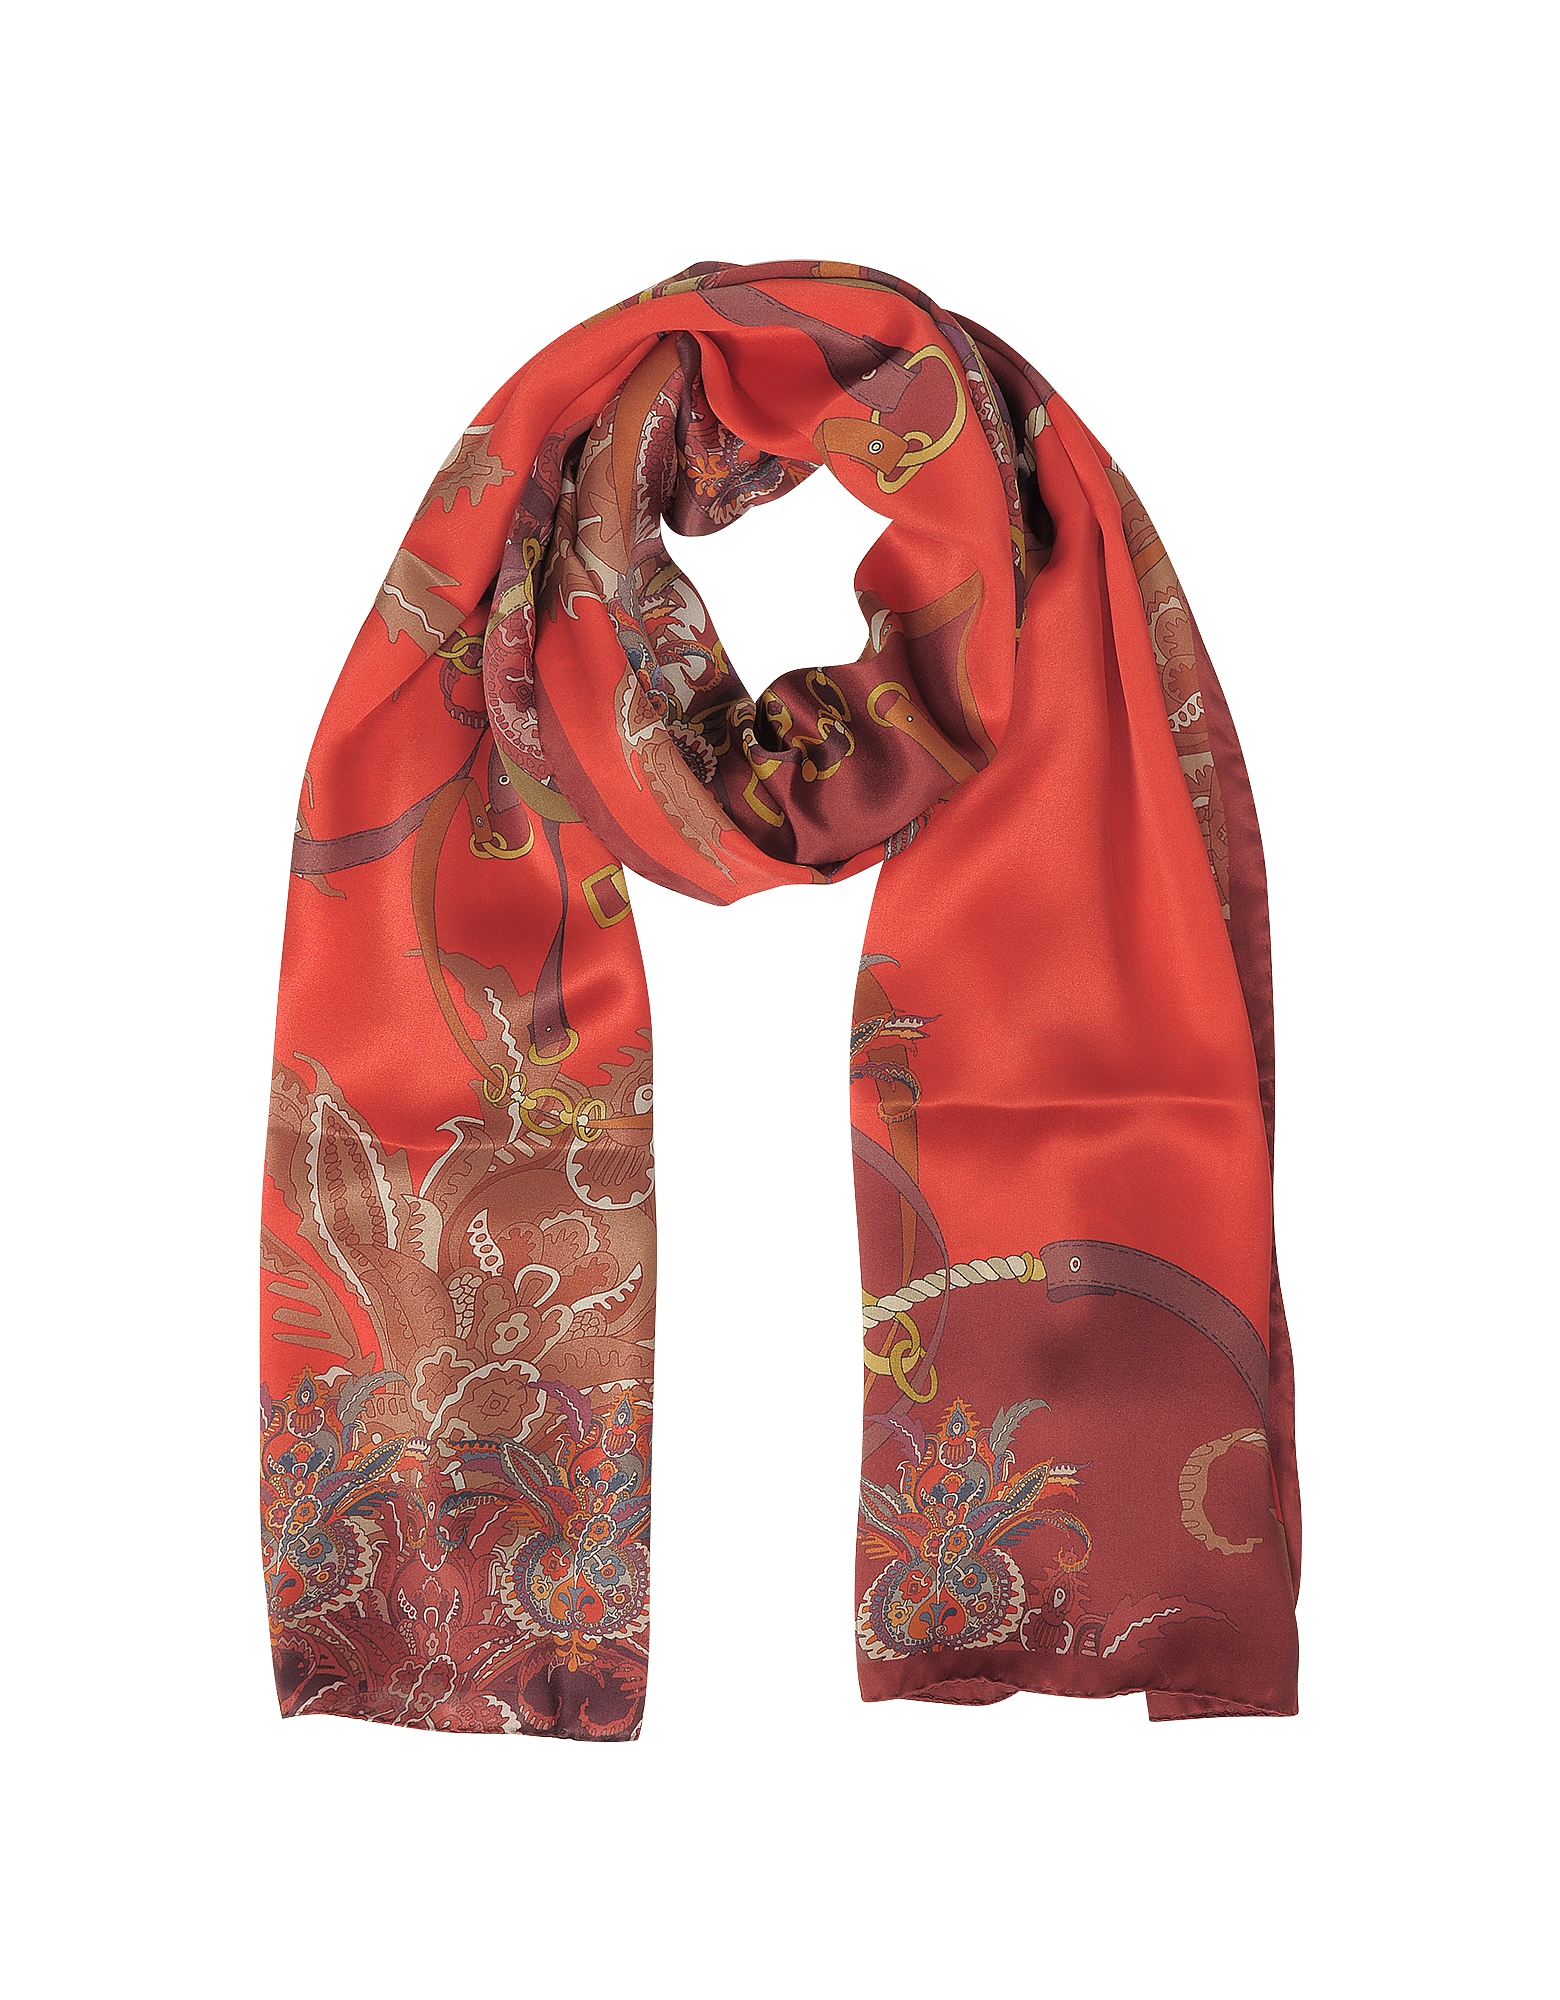 Mila Schon Scarves, Ornamental and Pattern Printed Satin Silk Stole